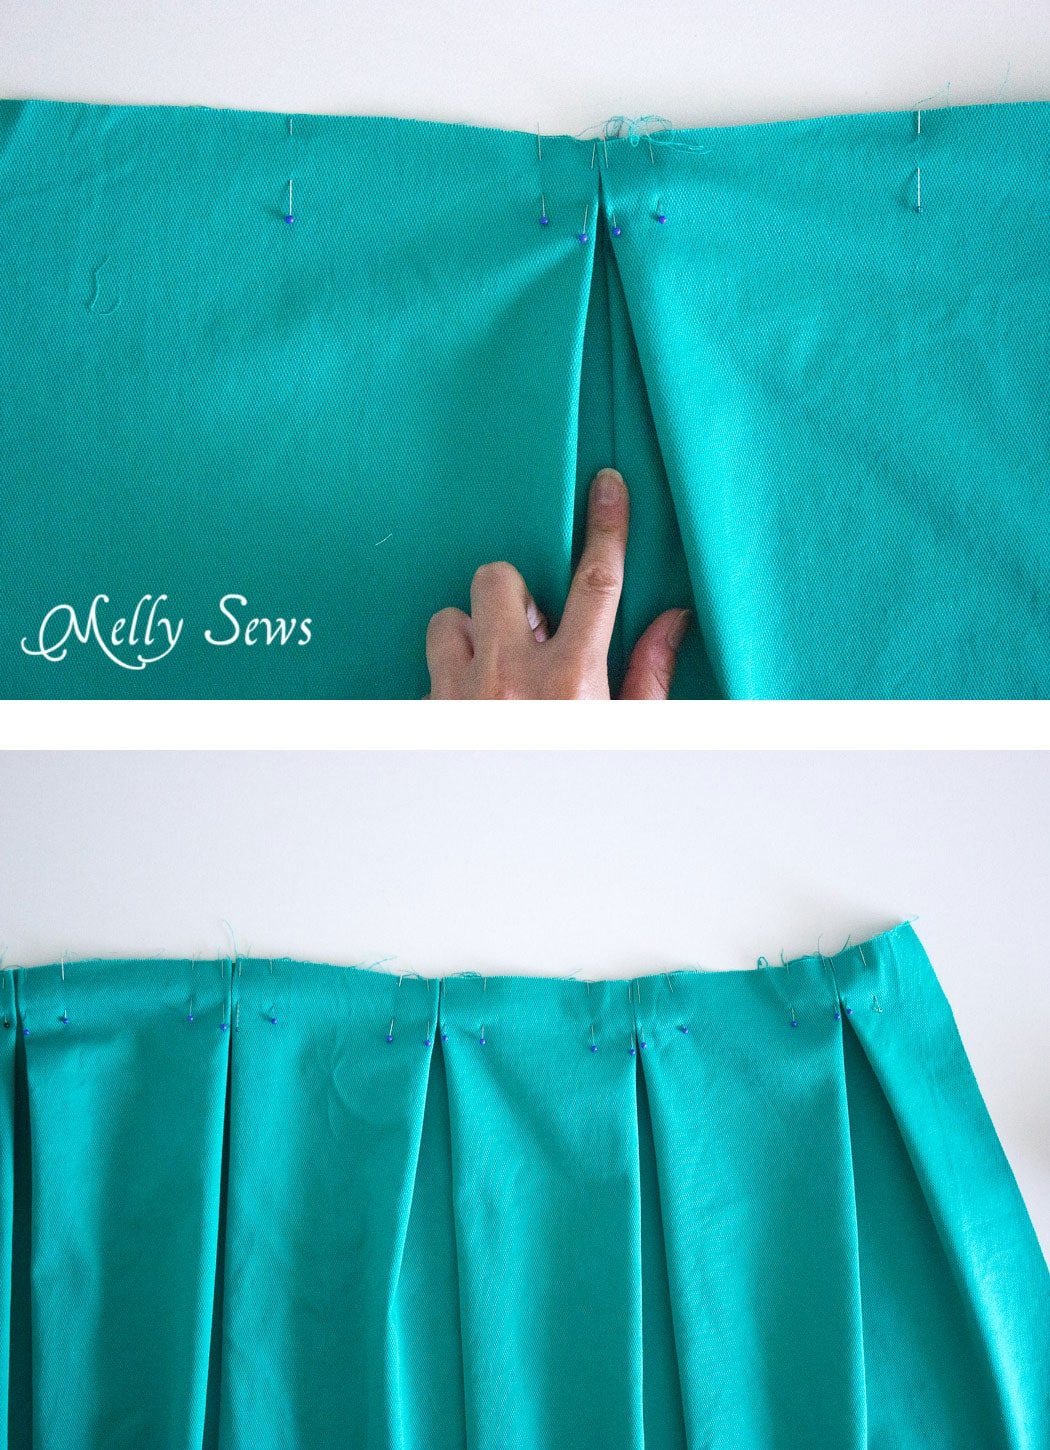 Step 3 - DIY Pleated Wrap Skirt - Sew a Pleated Mini Skirt with this easy tutorial - no buttons or zippers needed! - Melly Sews